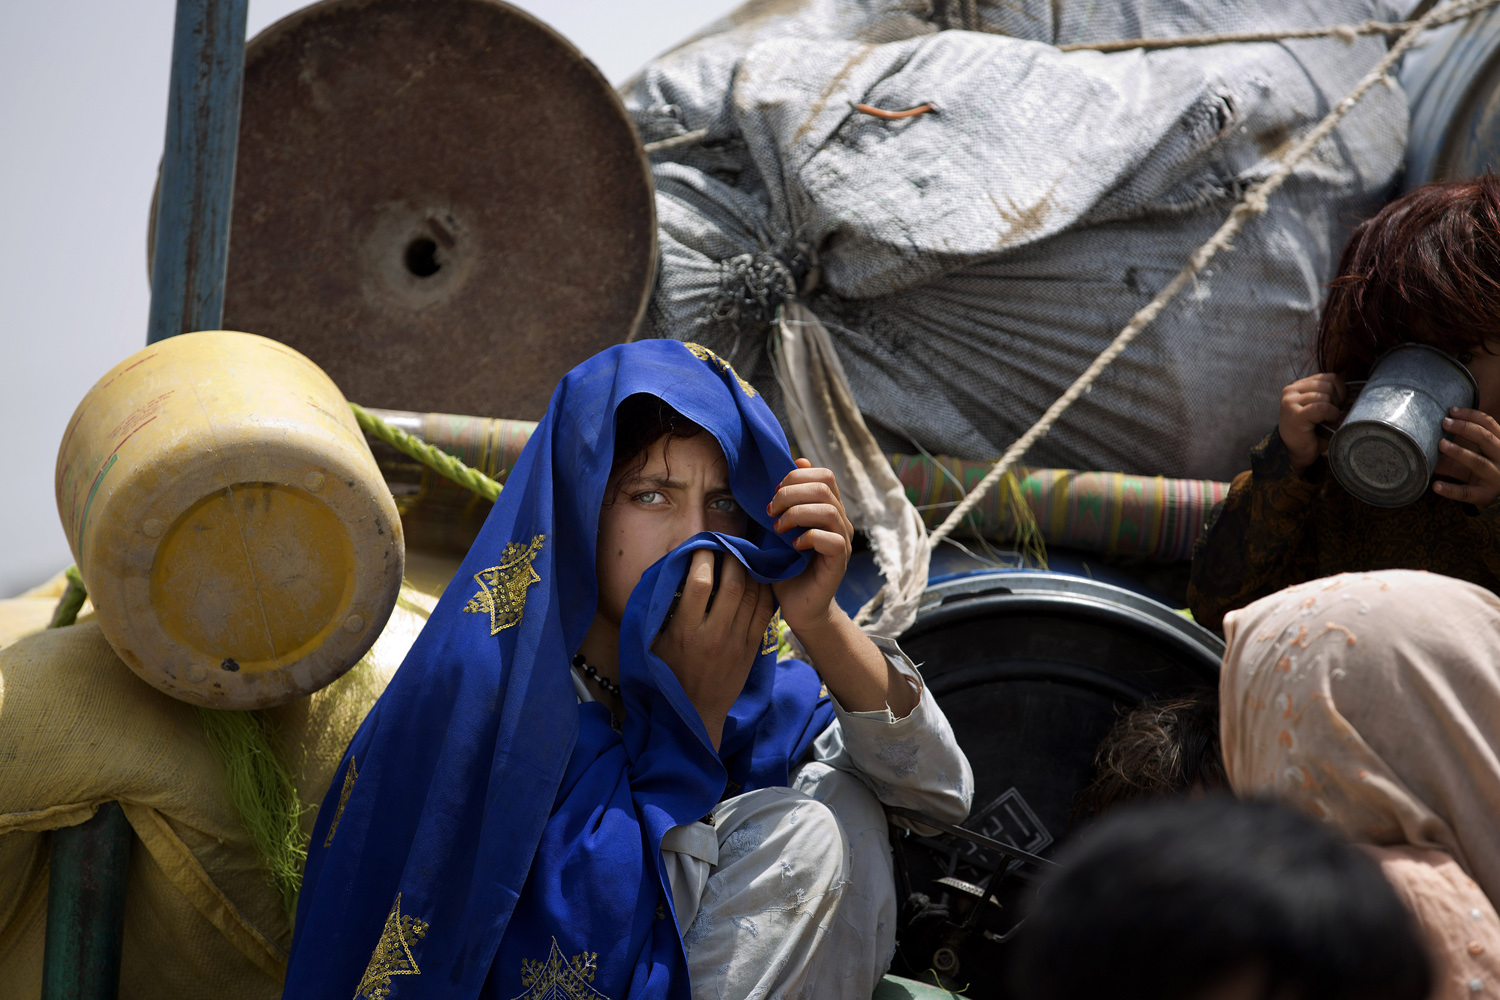 Jun. 18, 2014. A Pakistani tribal girl sits next to her belongings on a truck after arriving to Bannu, Pakistan. Thousands of villagers fled as Pakistani army relax a curfew in troubled North Waziristan.